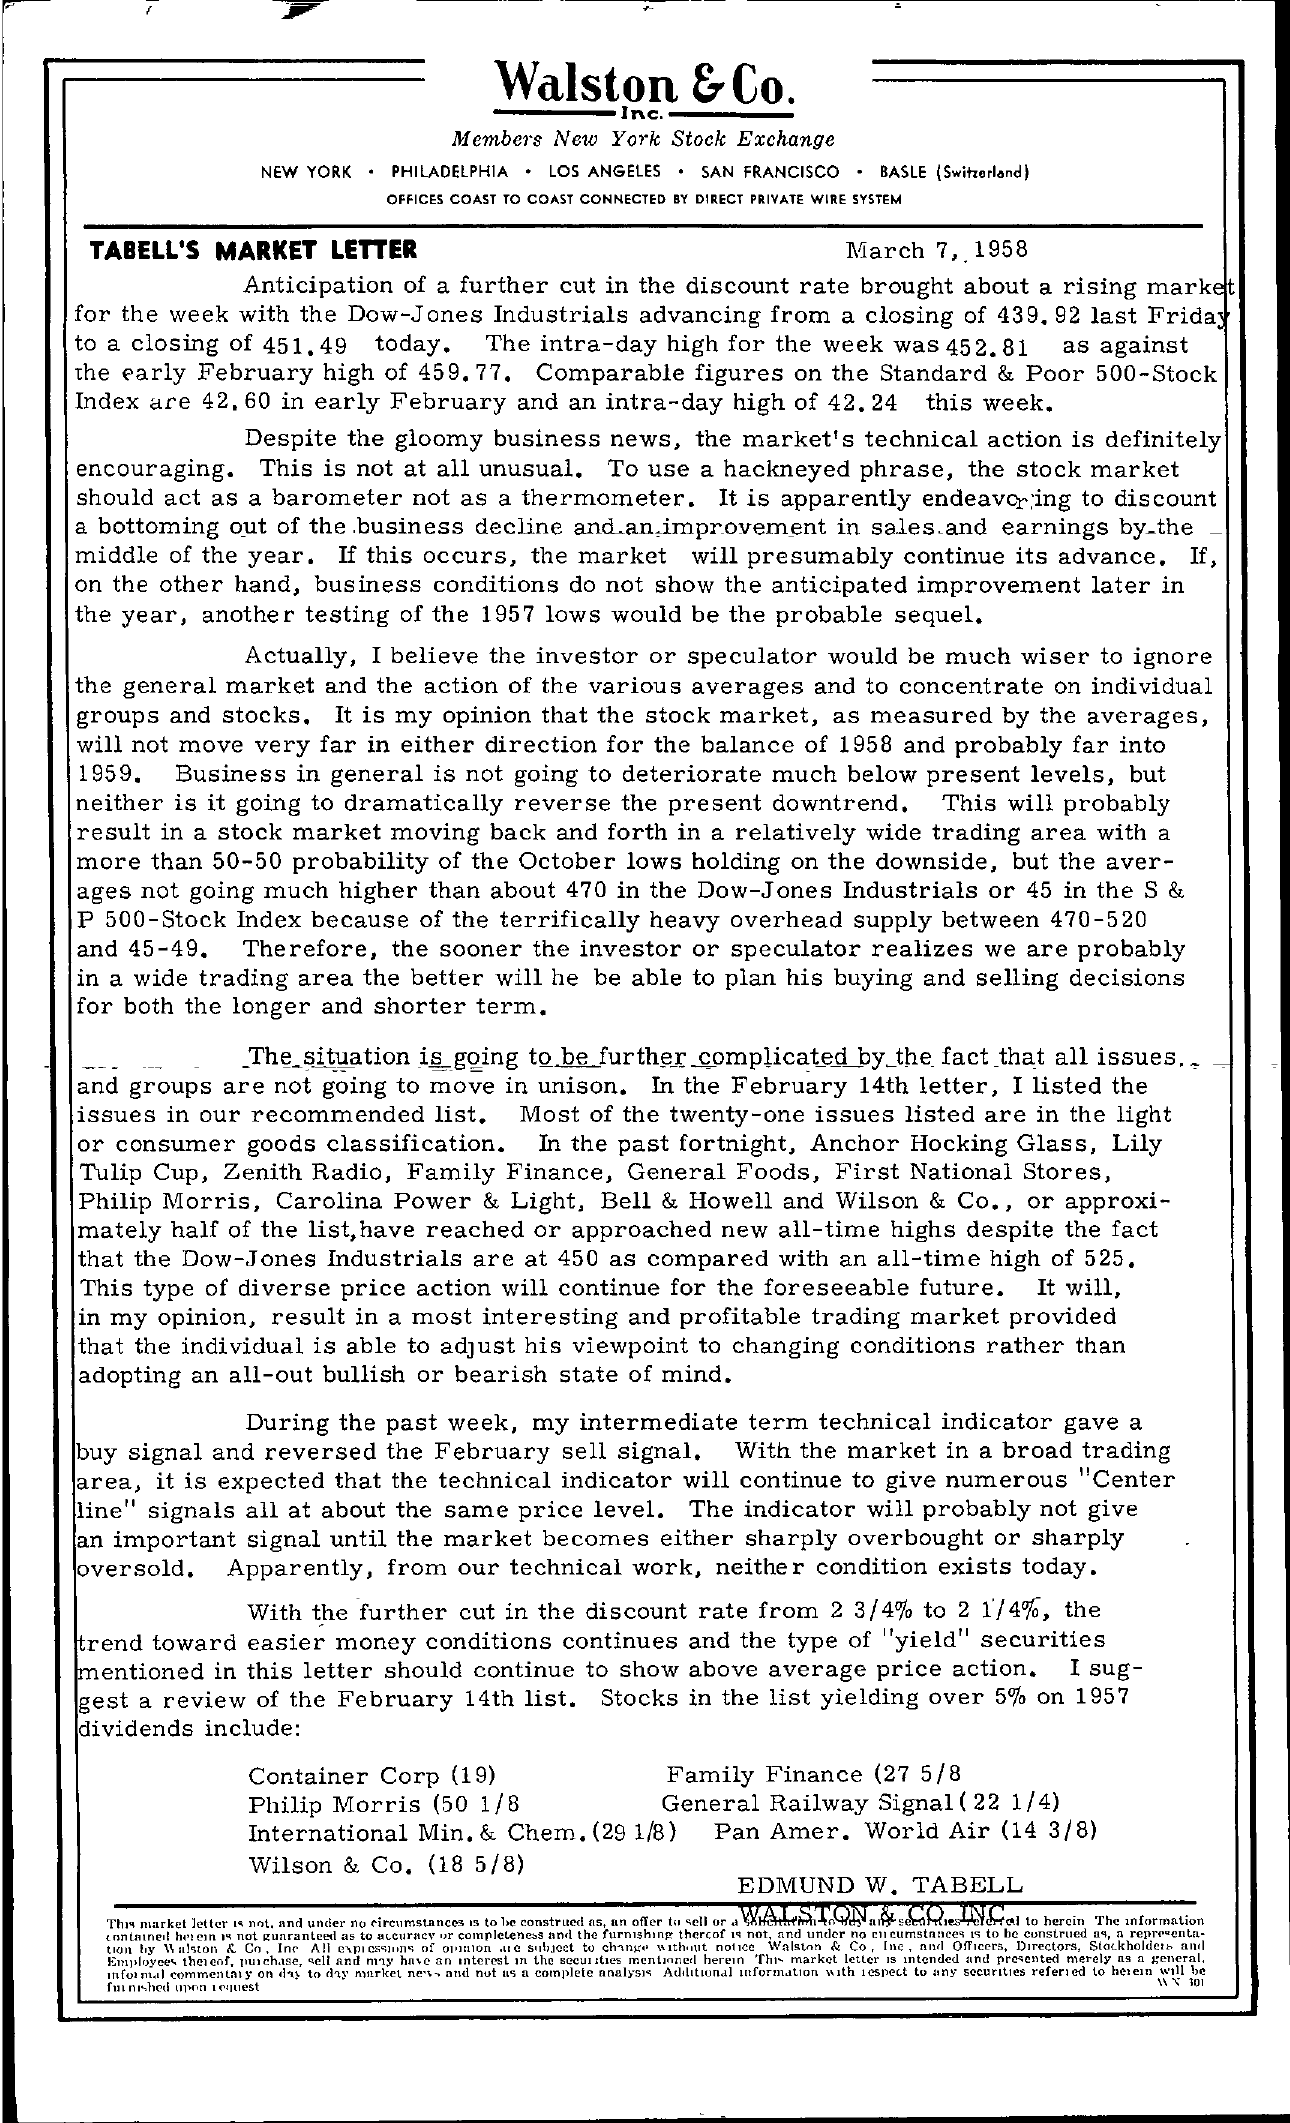 Tabell's Market Letter - March 07, 1958